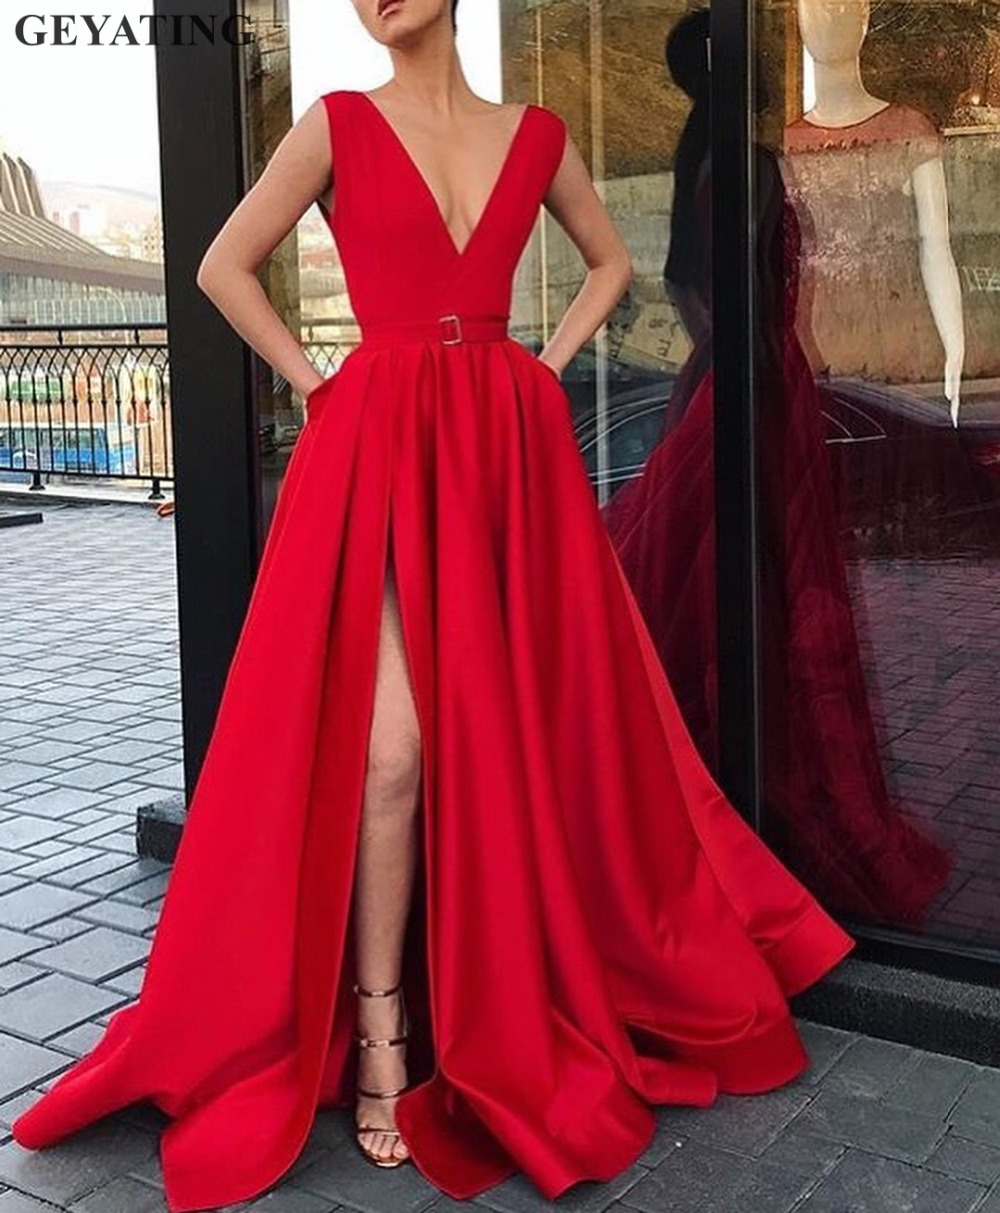 Sexy Deep V-neck Long Red Evening Dress with Pockets Satin High Side Slit Prom Dresses 2019 Elegant Women Formal Party Gowns